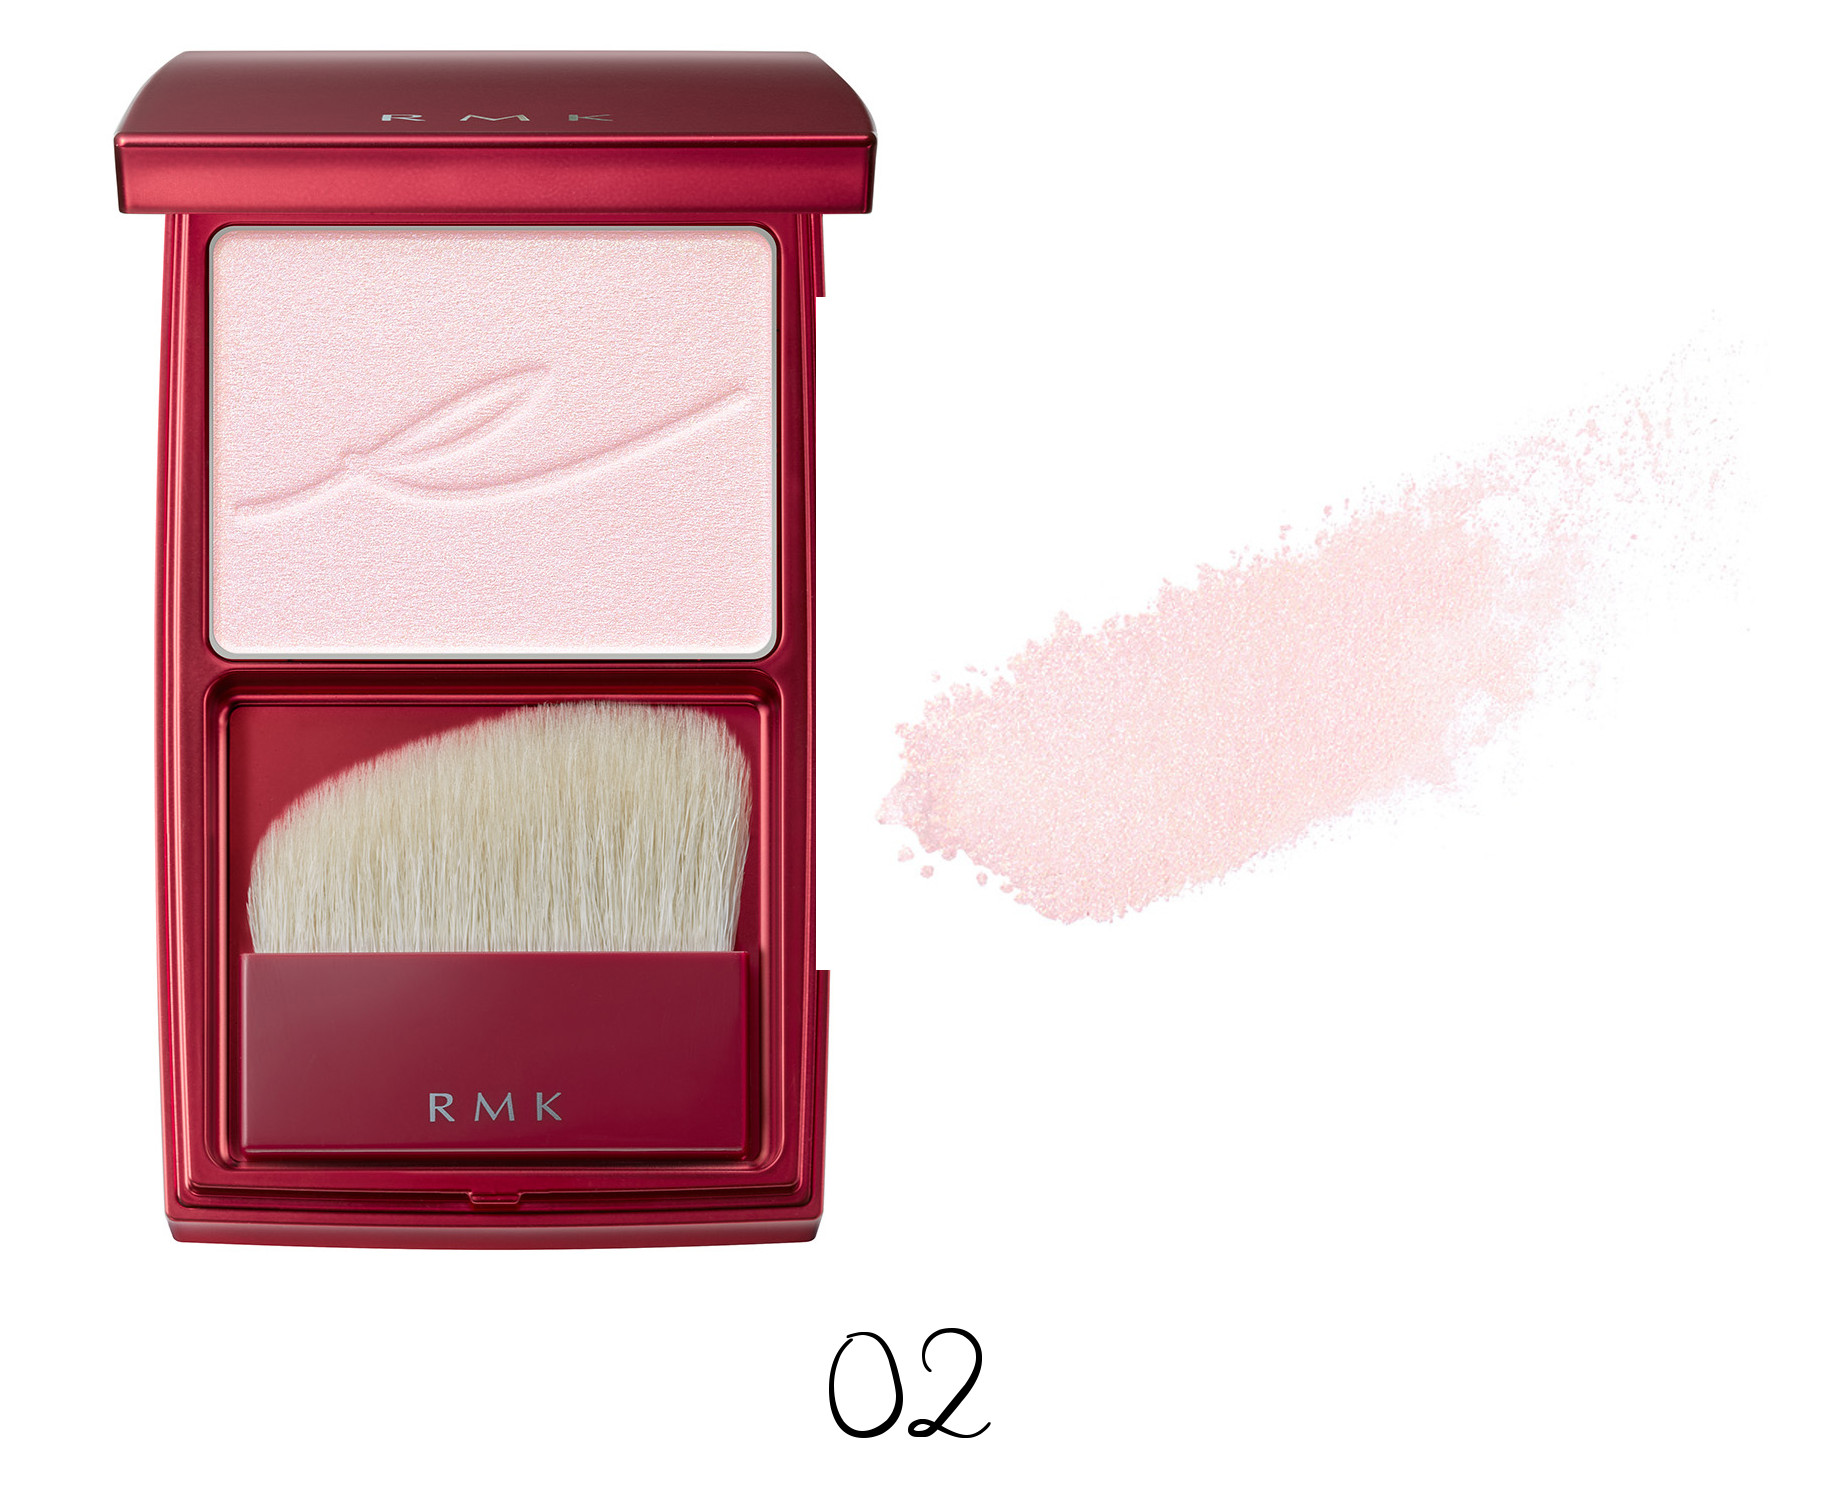 RMK Autumn Winter Collection 2020 Edozakura Translucent Powder 02